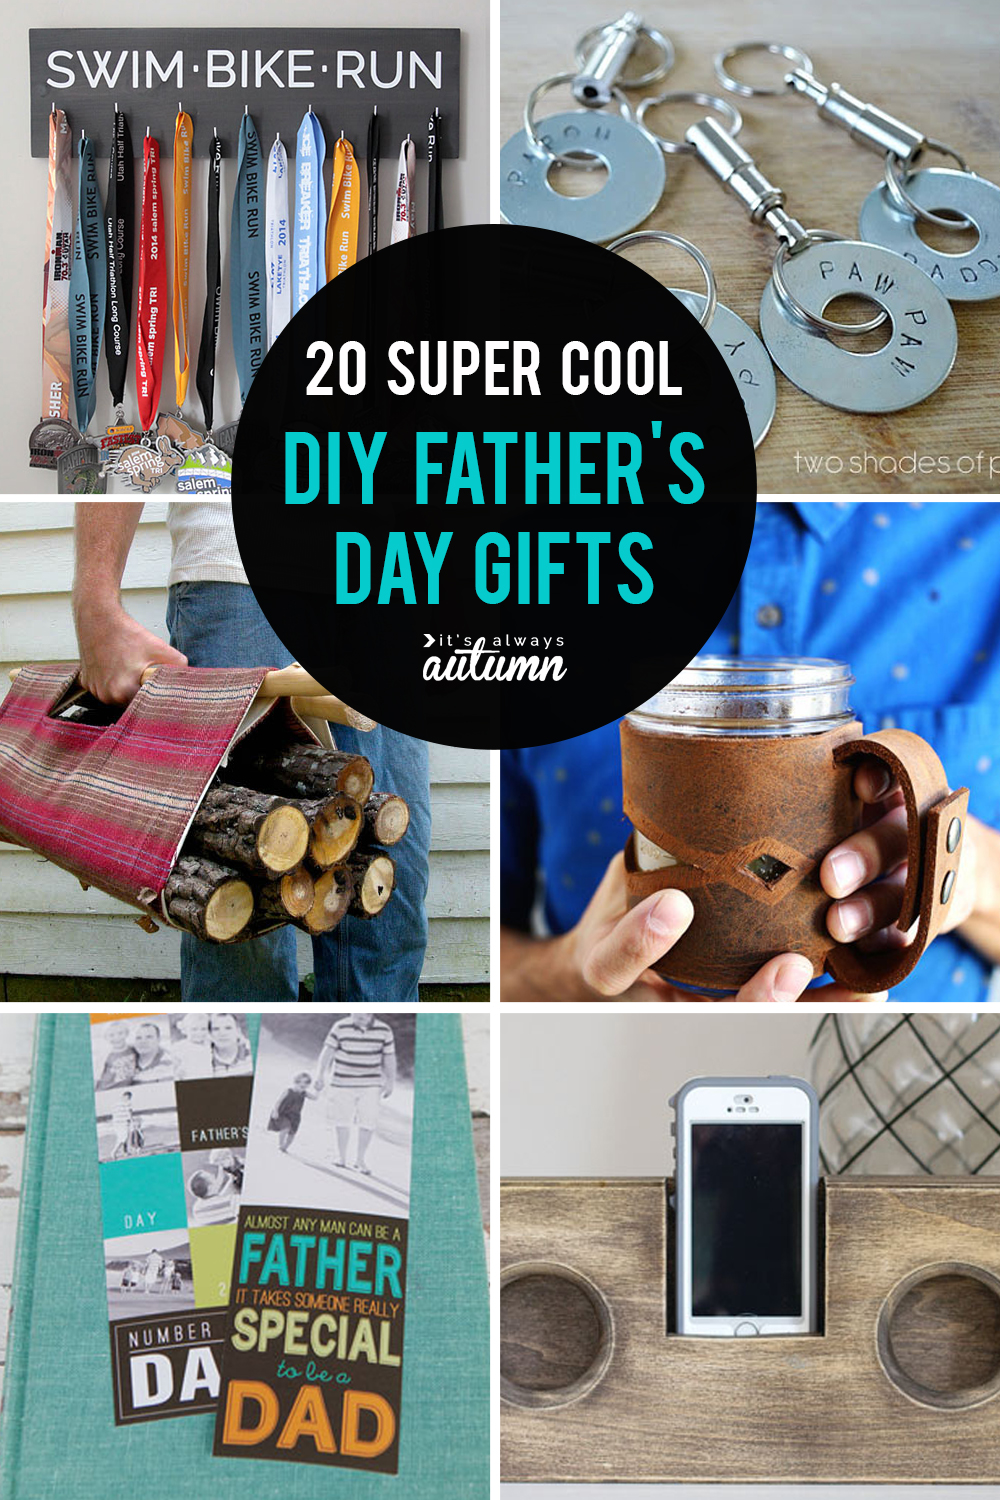 20 super cool DIY Father's Day gifts! Homemade gifts for Dad. Click through for all the tutorials.